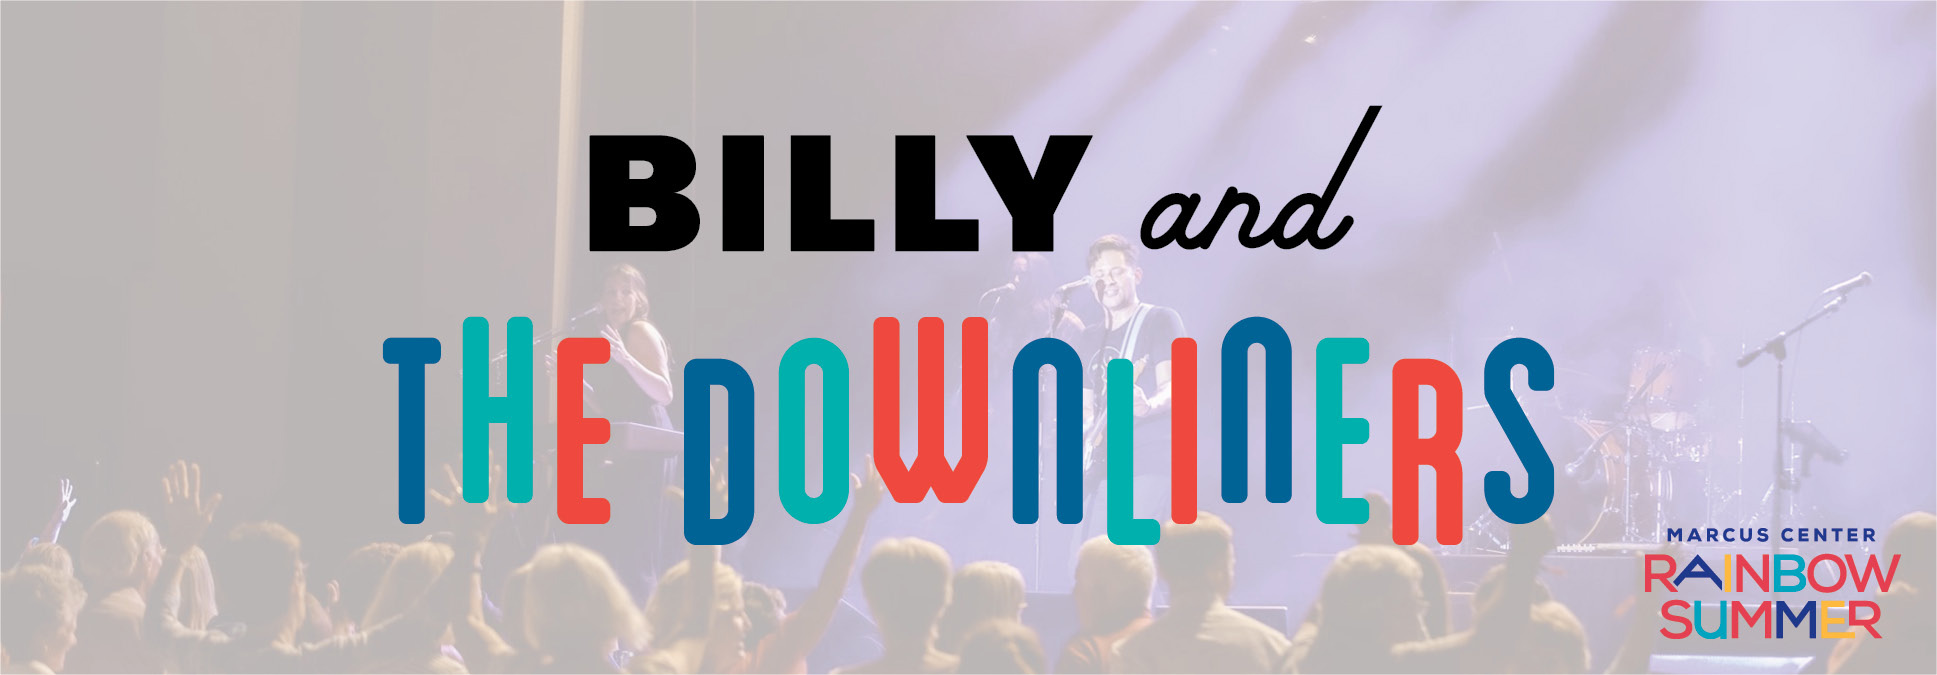 Bill and the Downliners at Rainbow Summer in Milwaukee at the Marcus Center